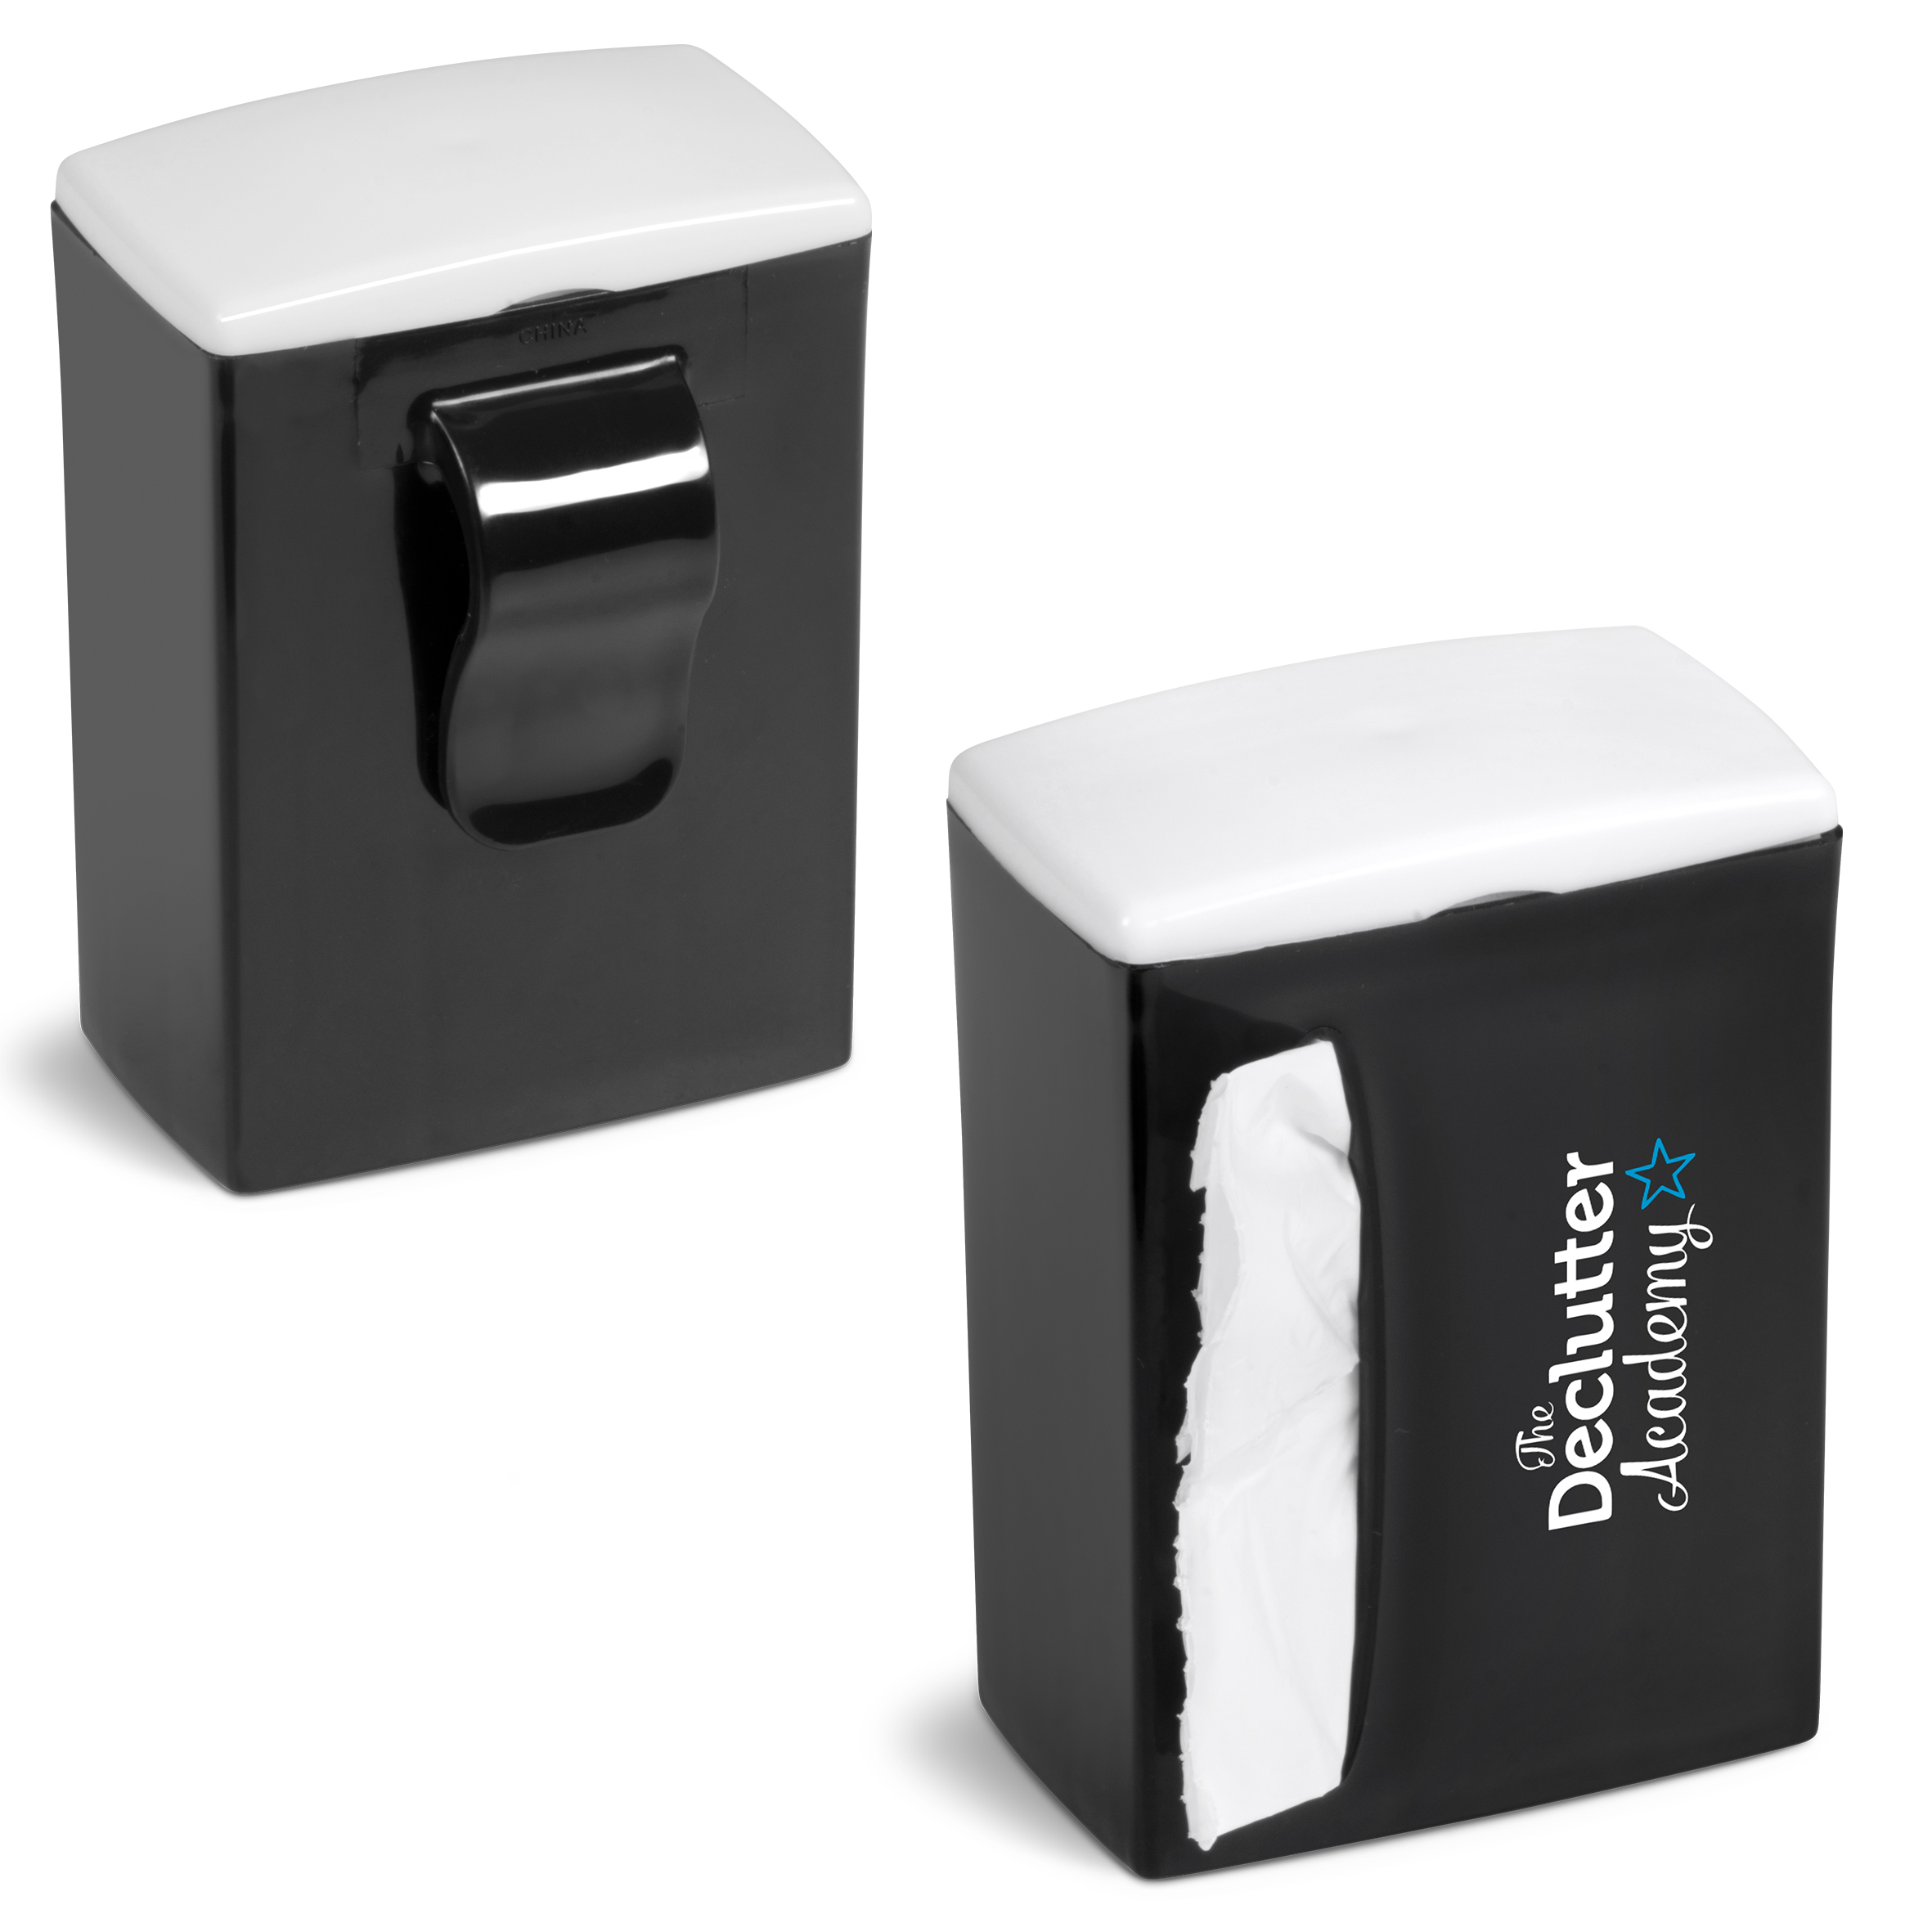 Product: Keep It Clean Bag Dispenser - Black Only